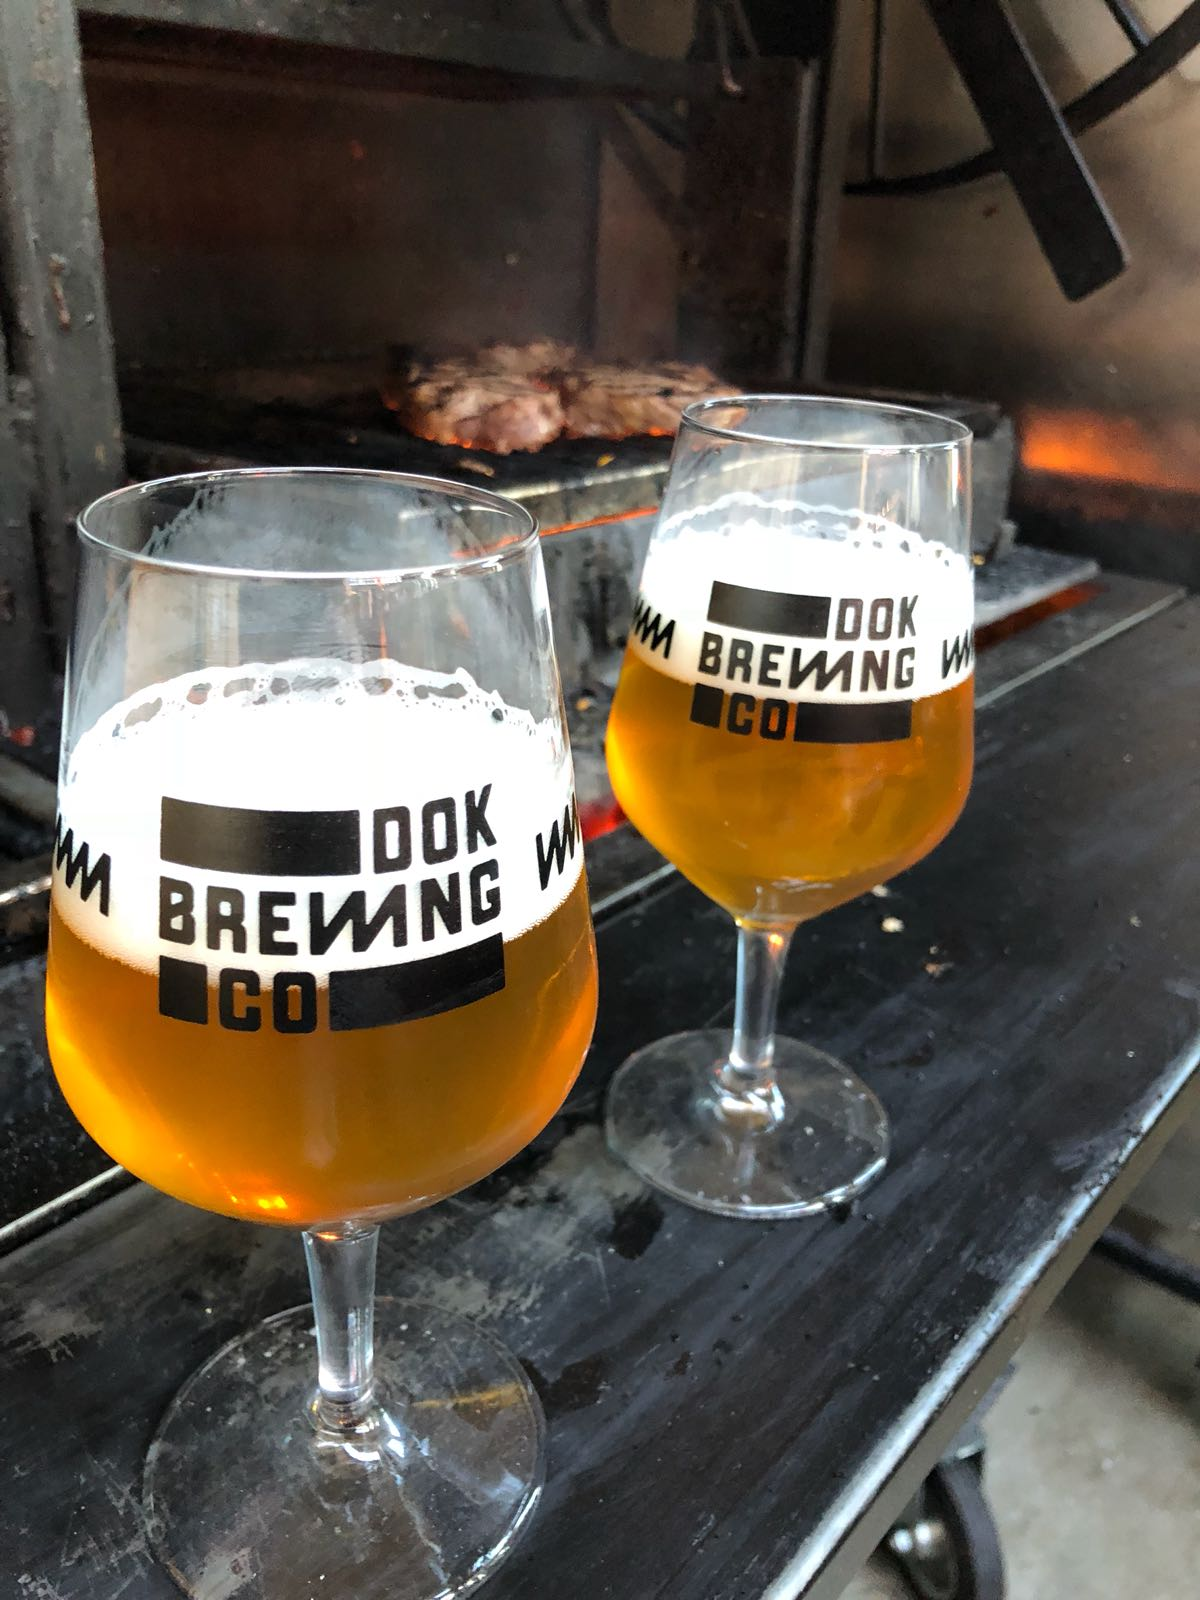 https://usercontent.one/wp/www.dokbrewingcompany.be/wp-content/uploads/2018/07/Dok-brewing-company-glassware-1.jpg